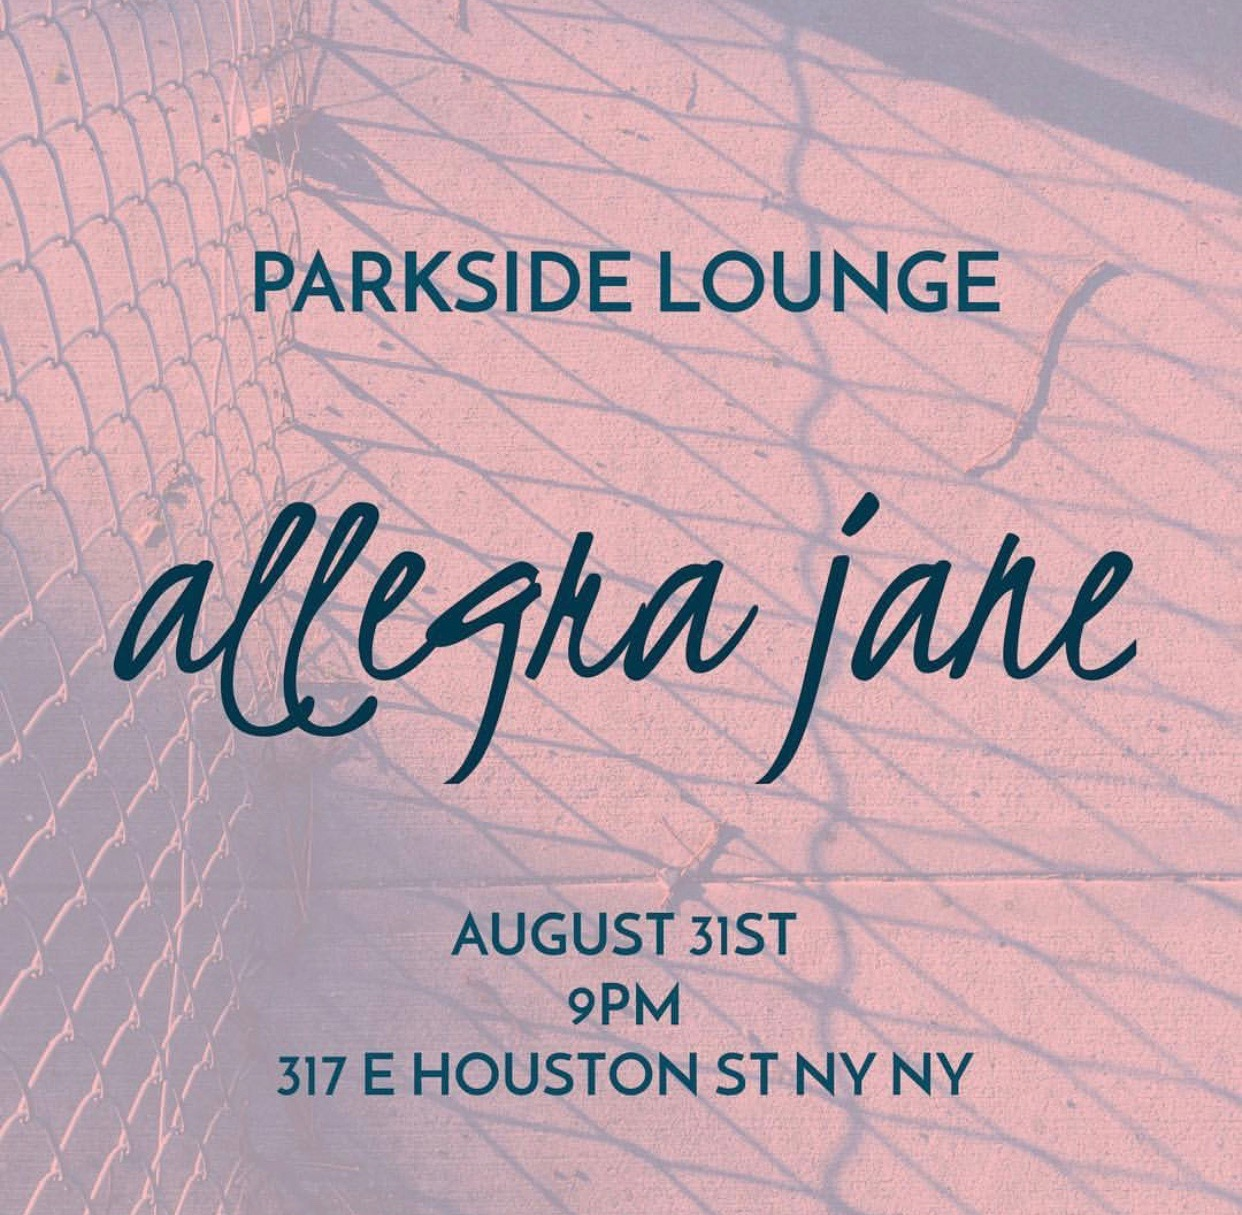 Parkside Lounge - Allegra Jane performed an original set off of her forthcoming EP